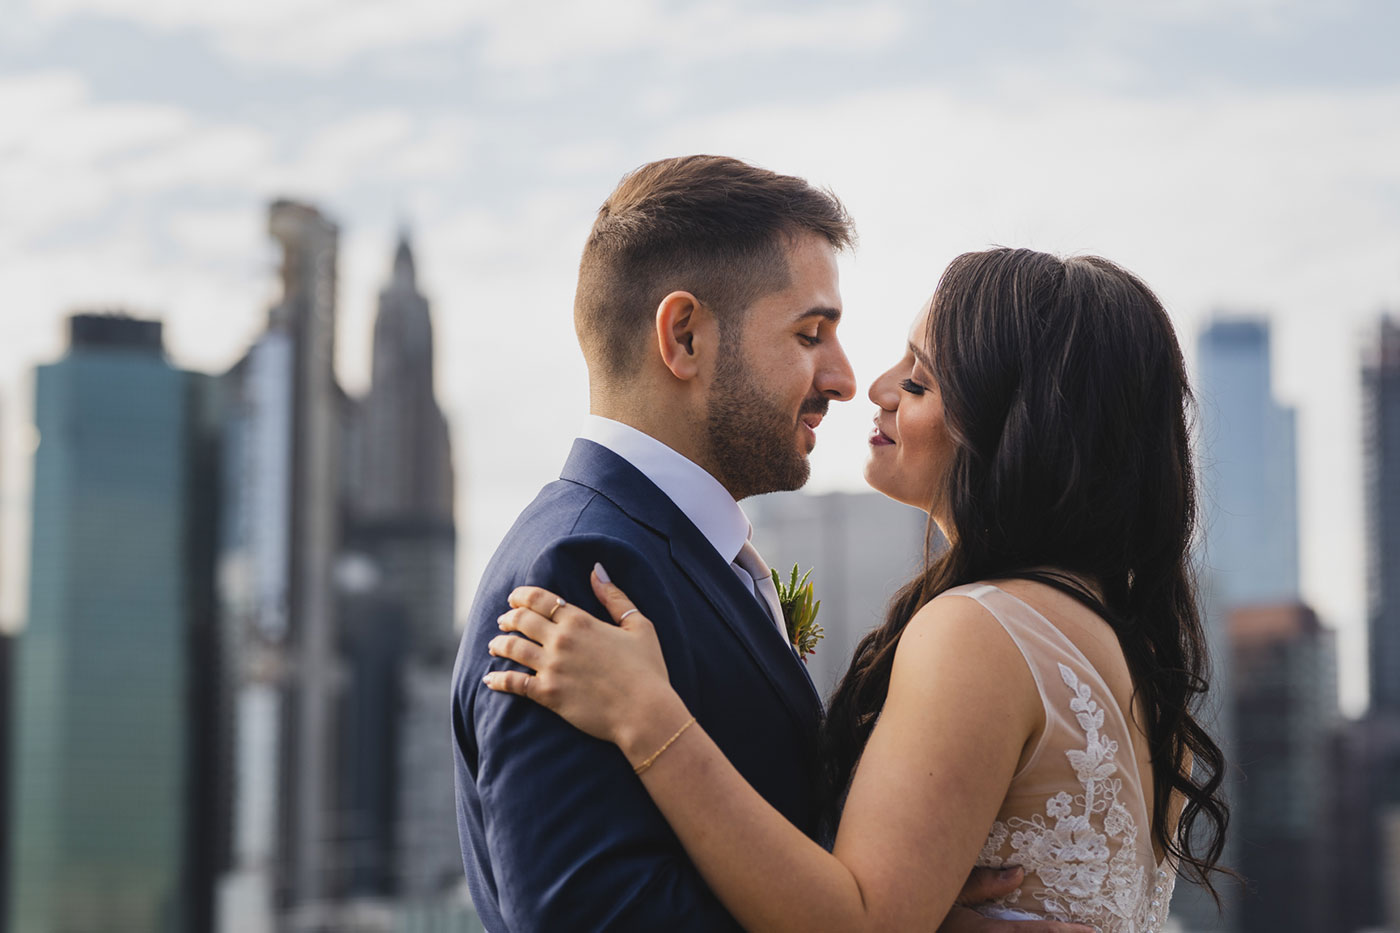 Bride and groom portrait from an elopement at Jane's Carousel in Brooklyn Bridge Park by Weddings by Hanel